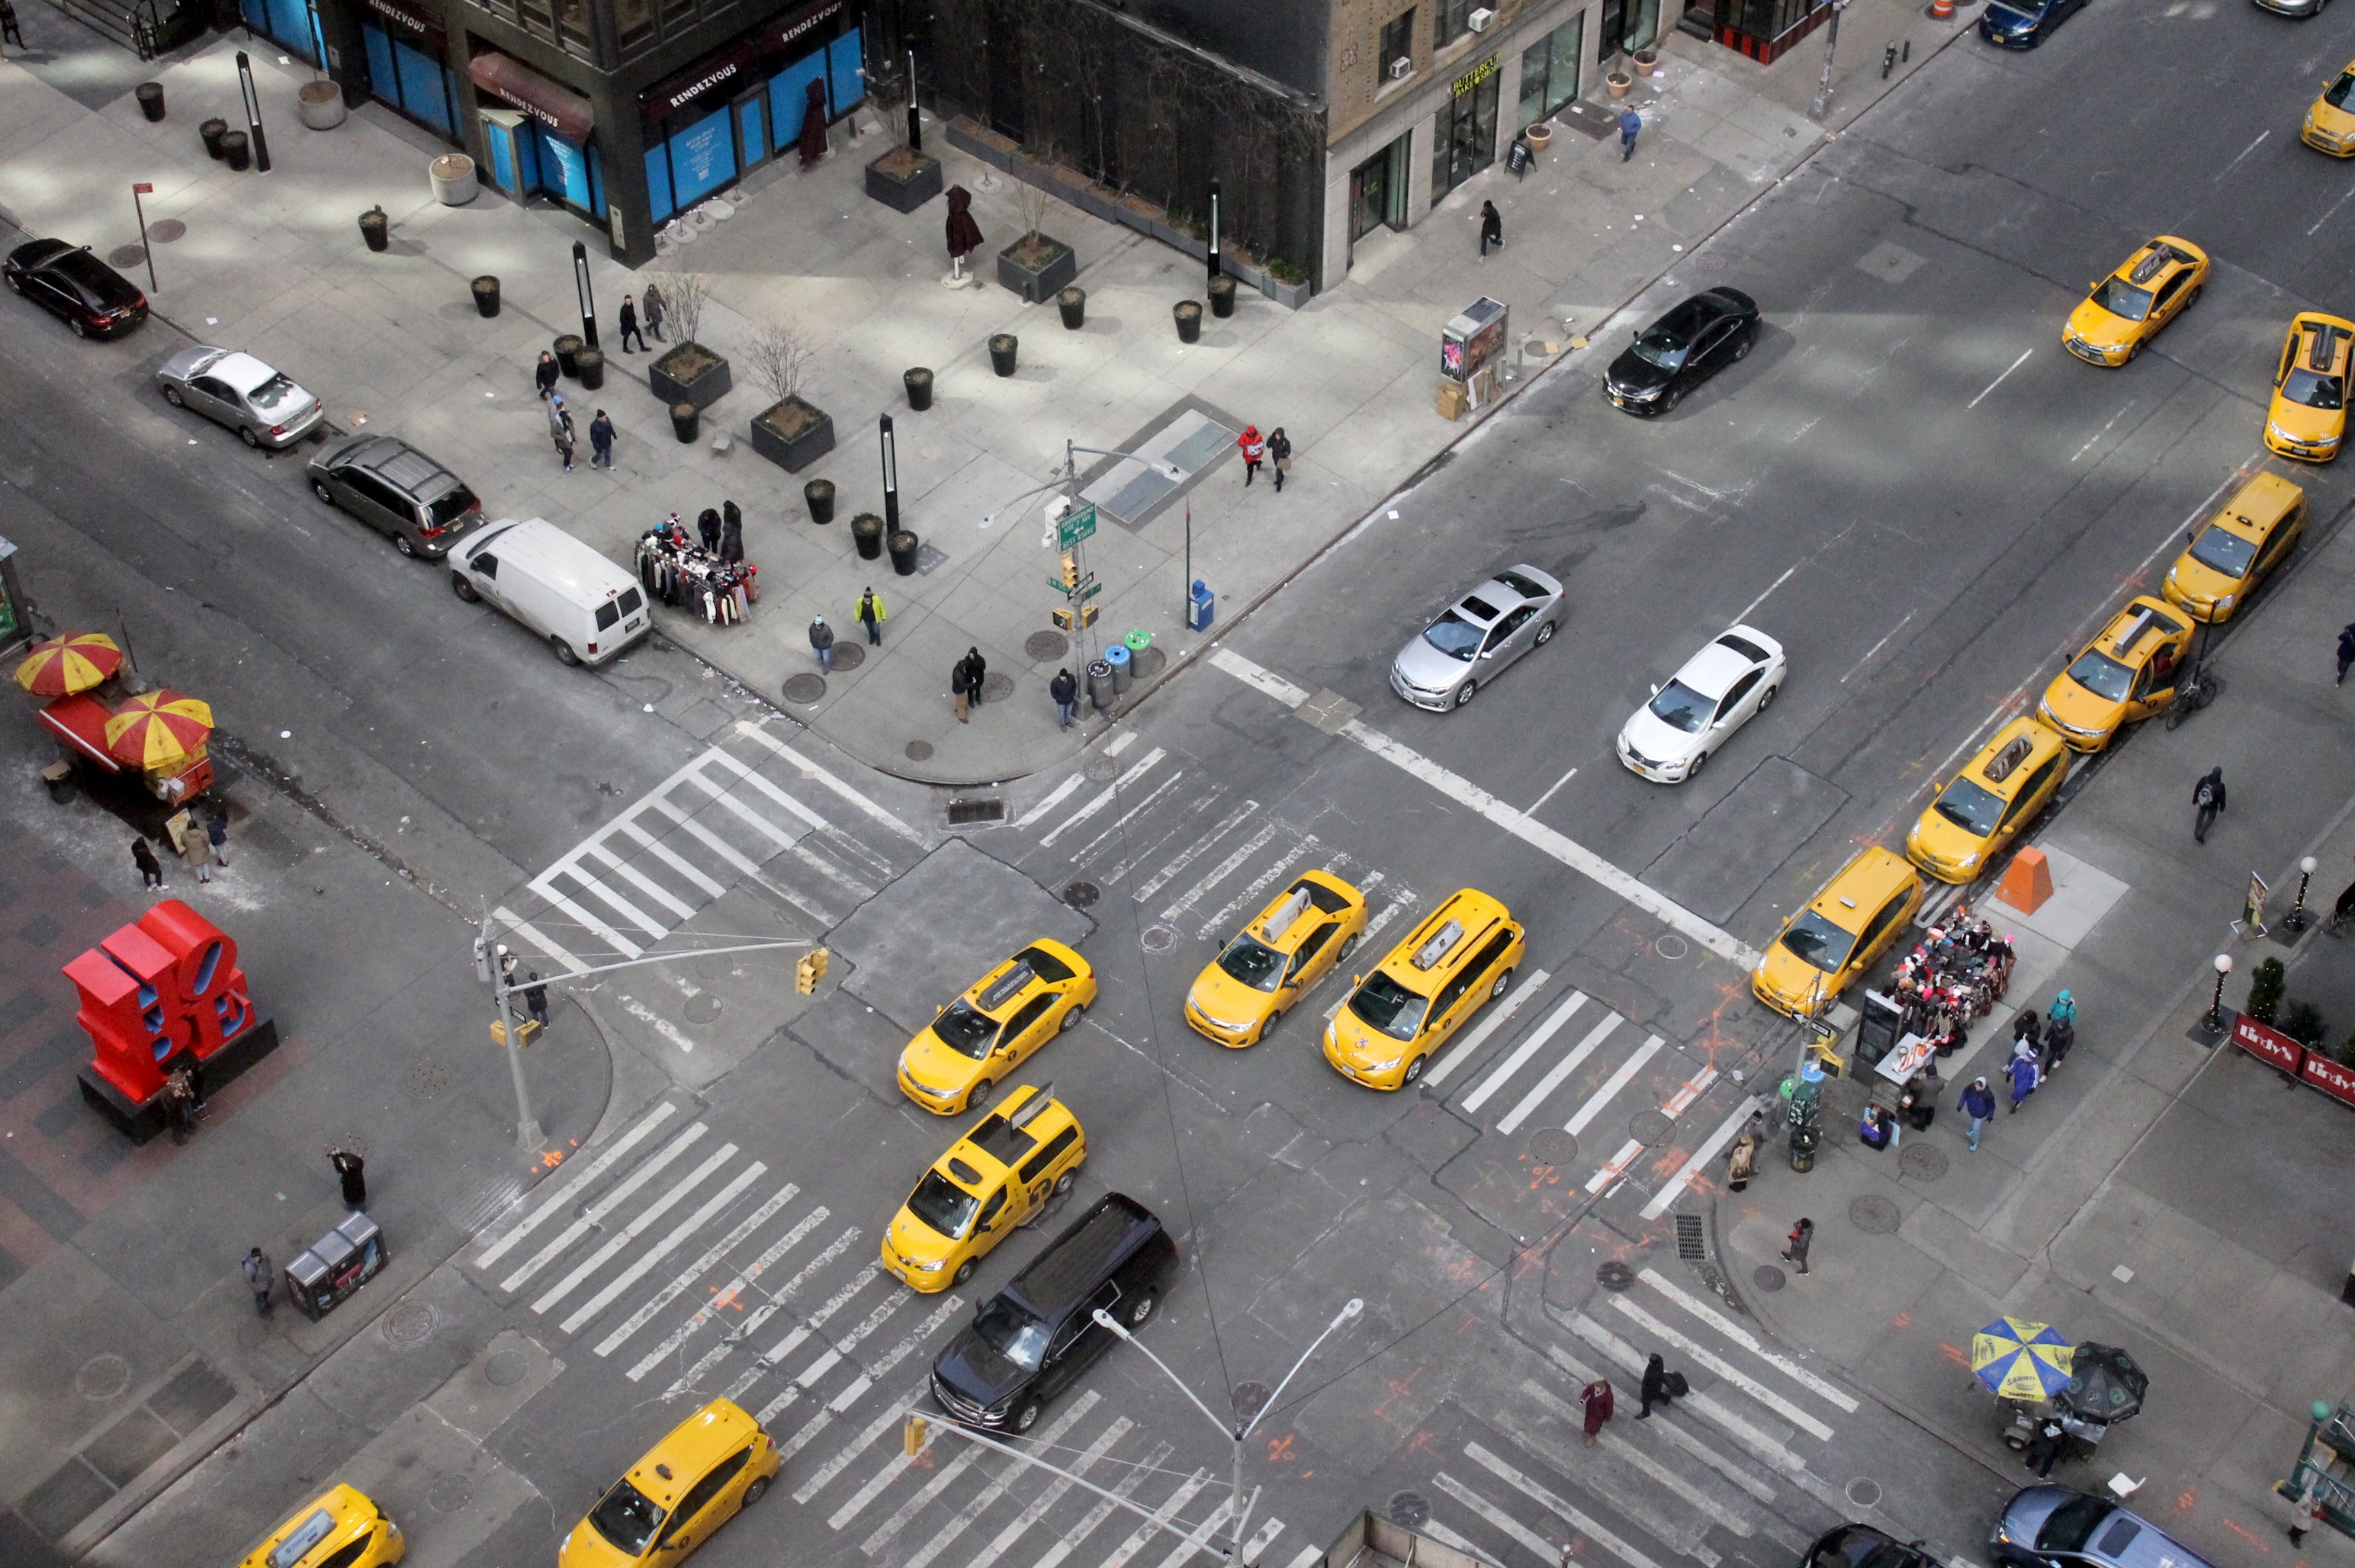 Intersection with cars on all sides